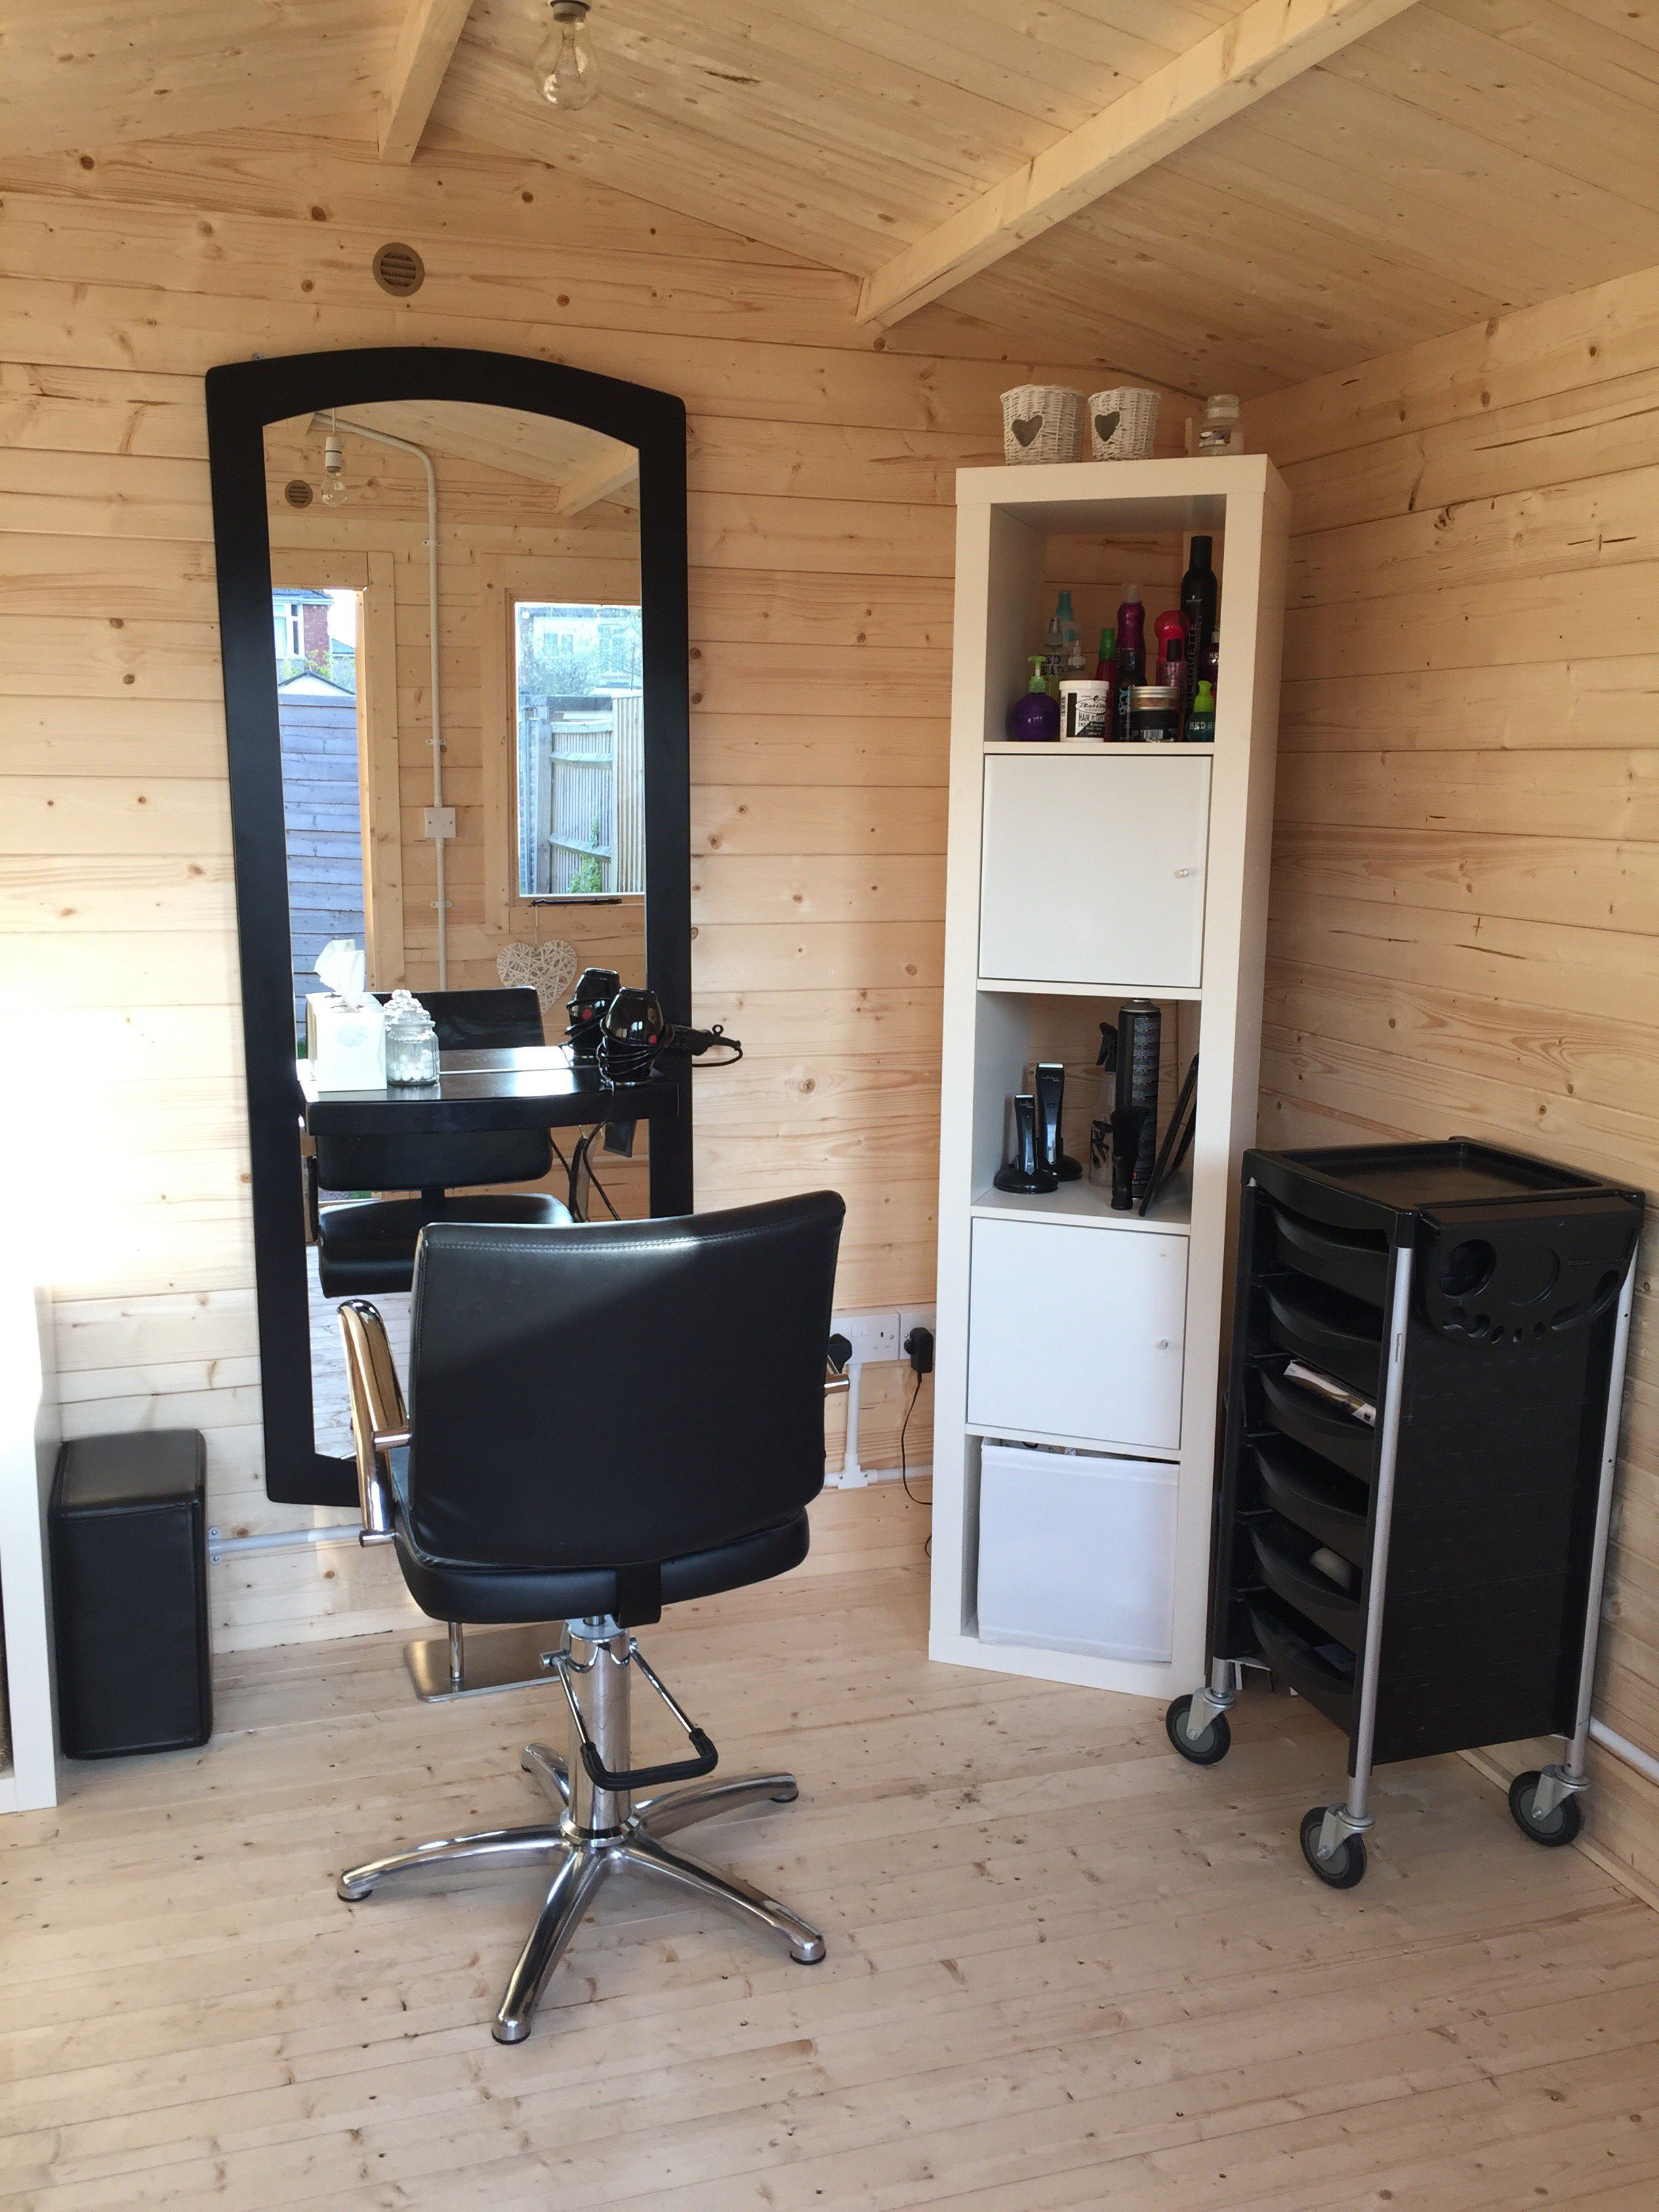 Design house hair - Emma Vietch Turned Her Log Cabin Into A Hair Salon To Free Up Some Space In